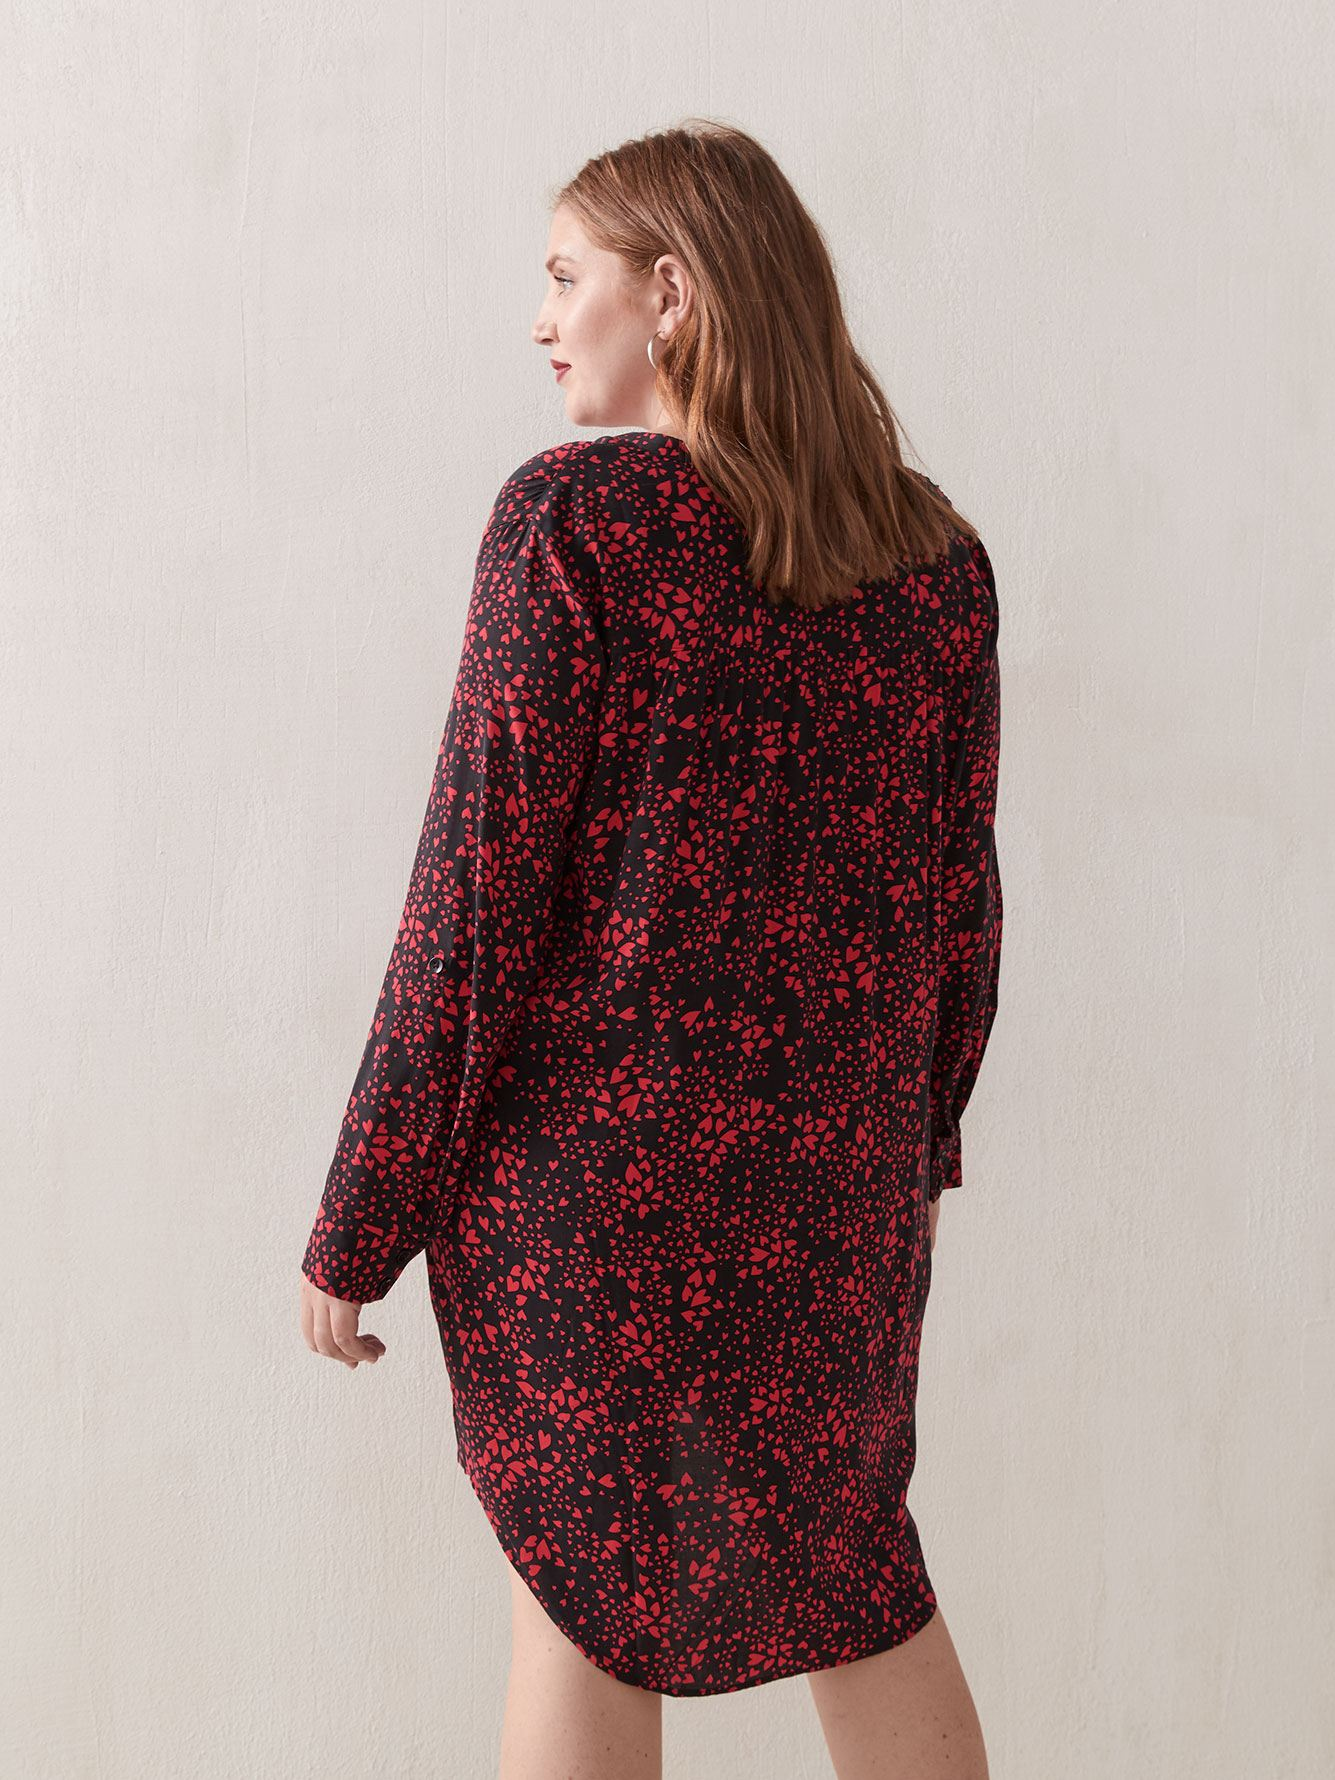 Printed Long-Sleeve Shirt Dress - Love & Legend